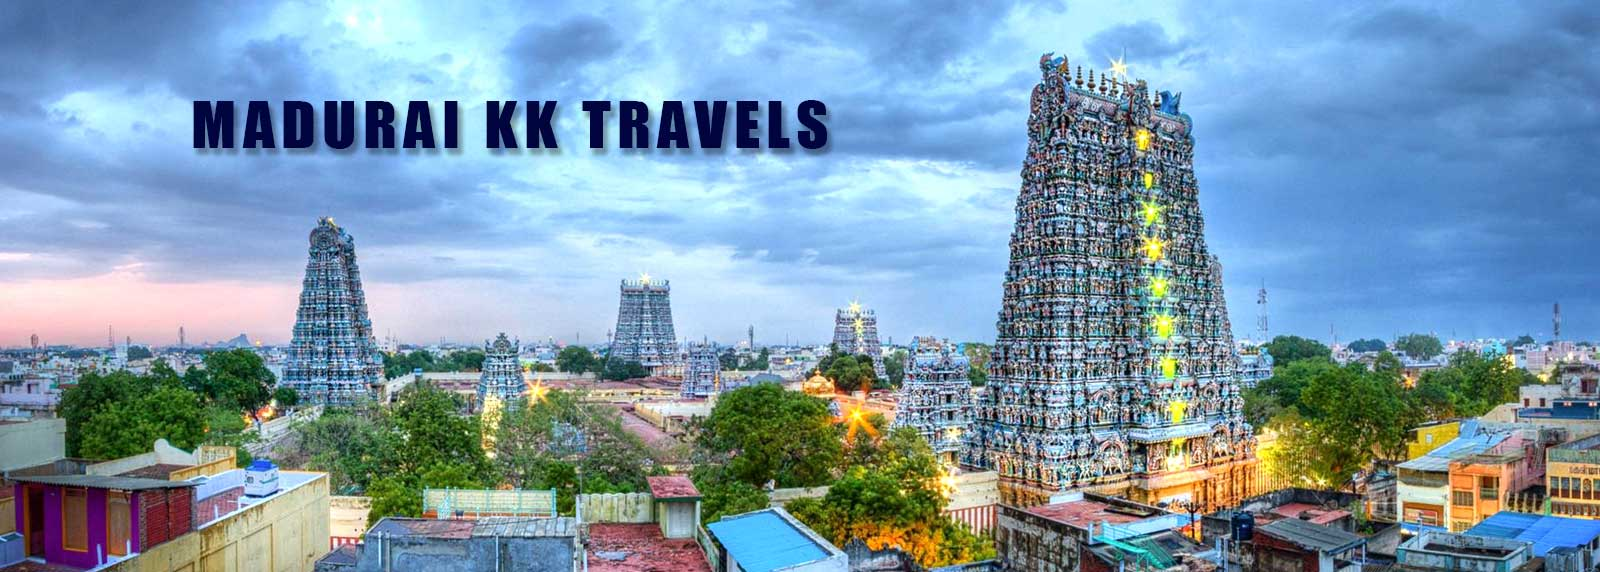 madurai-kk-tavels-slider1